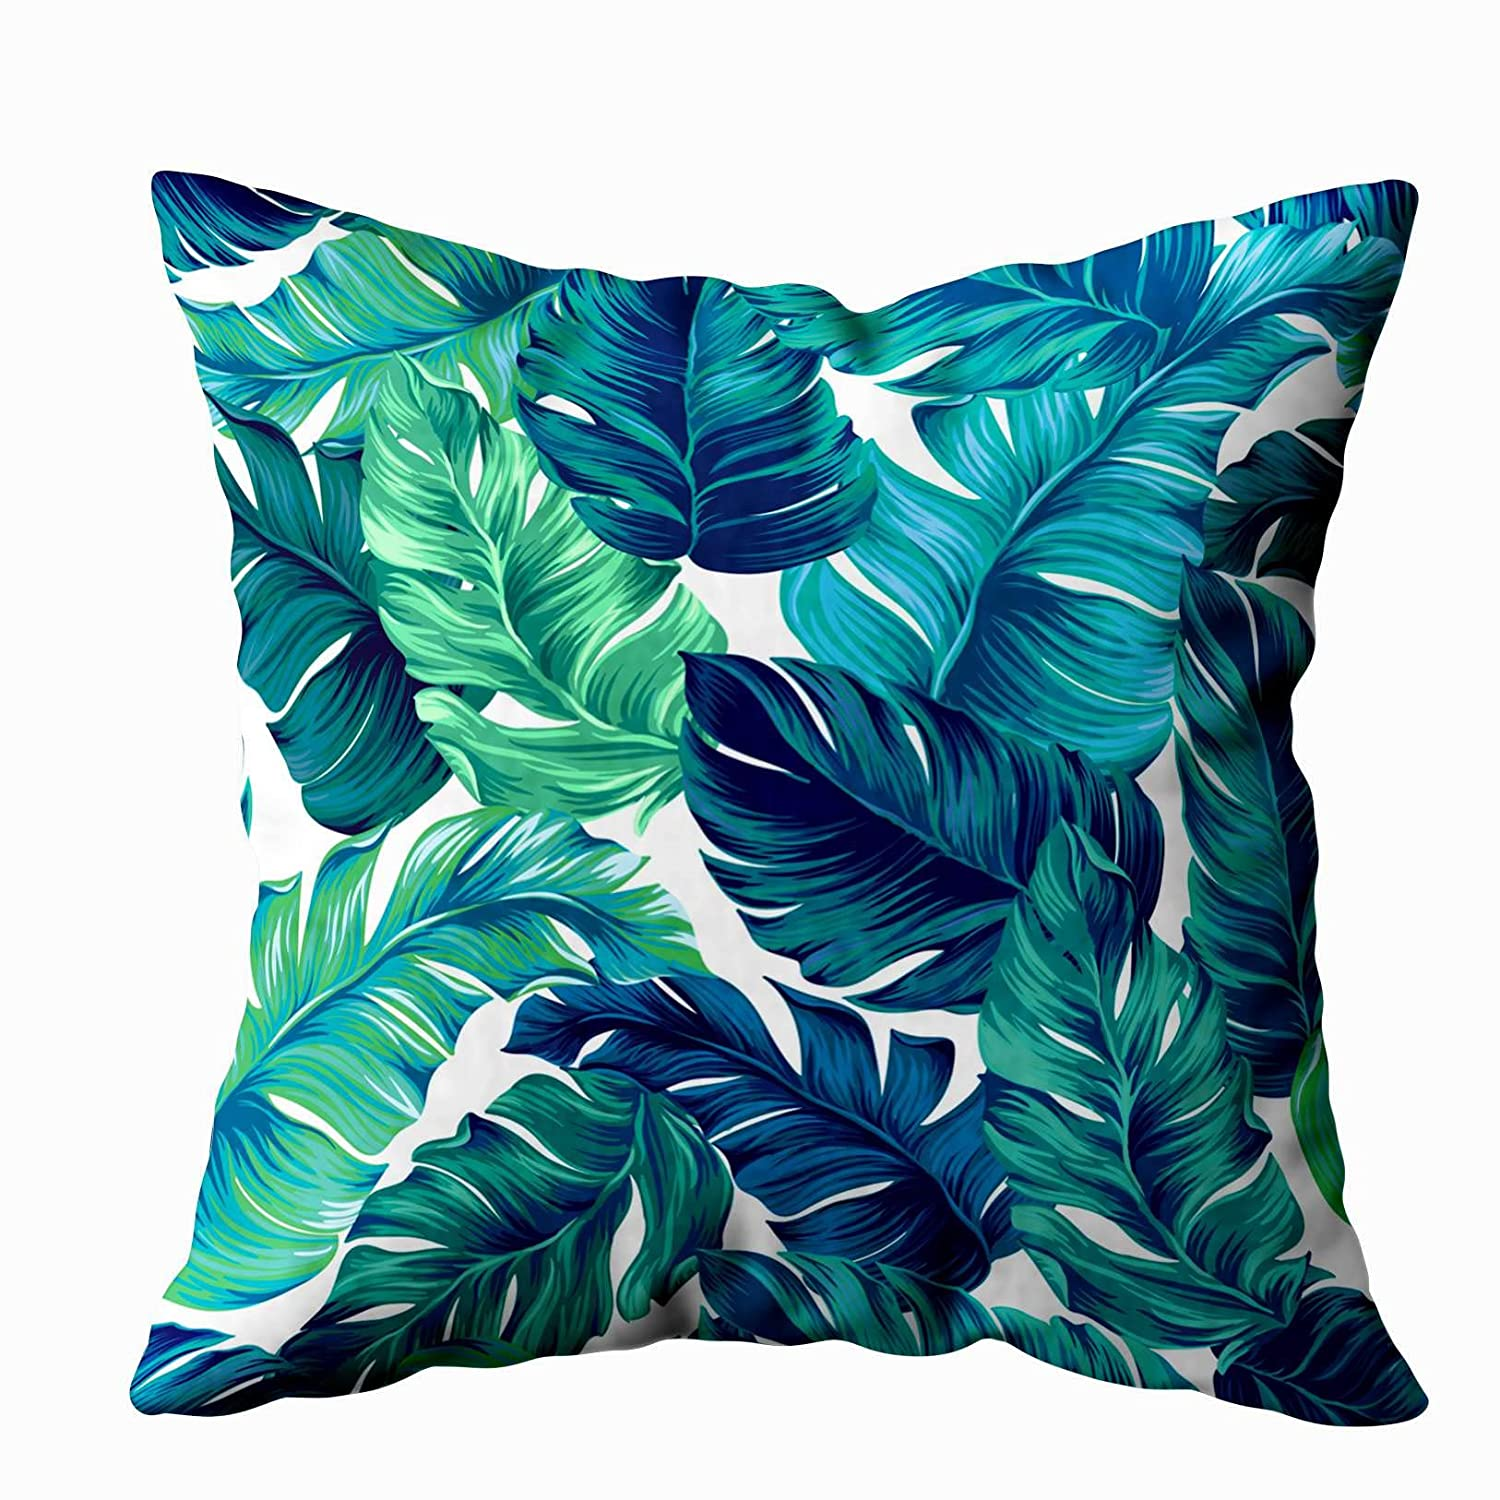 TOMWISH Standard Pillow Cases,TOMKEY Hidden Zippered 18X18Inch Turquoise Green Tropical Leaves Graphic Amazing Palms Fashion Interior Decor Throw ...